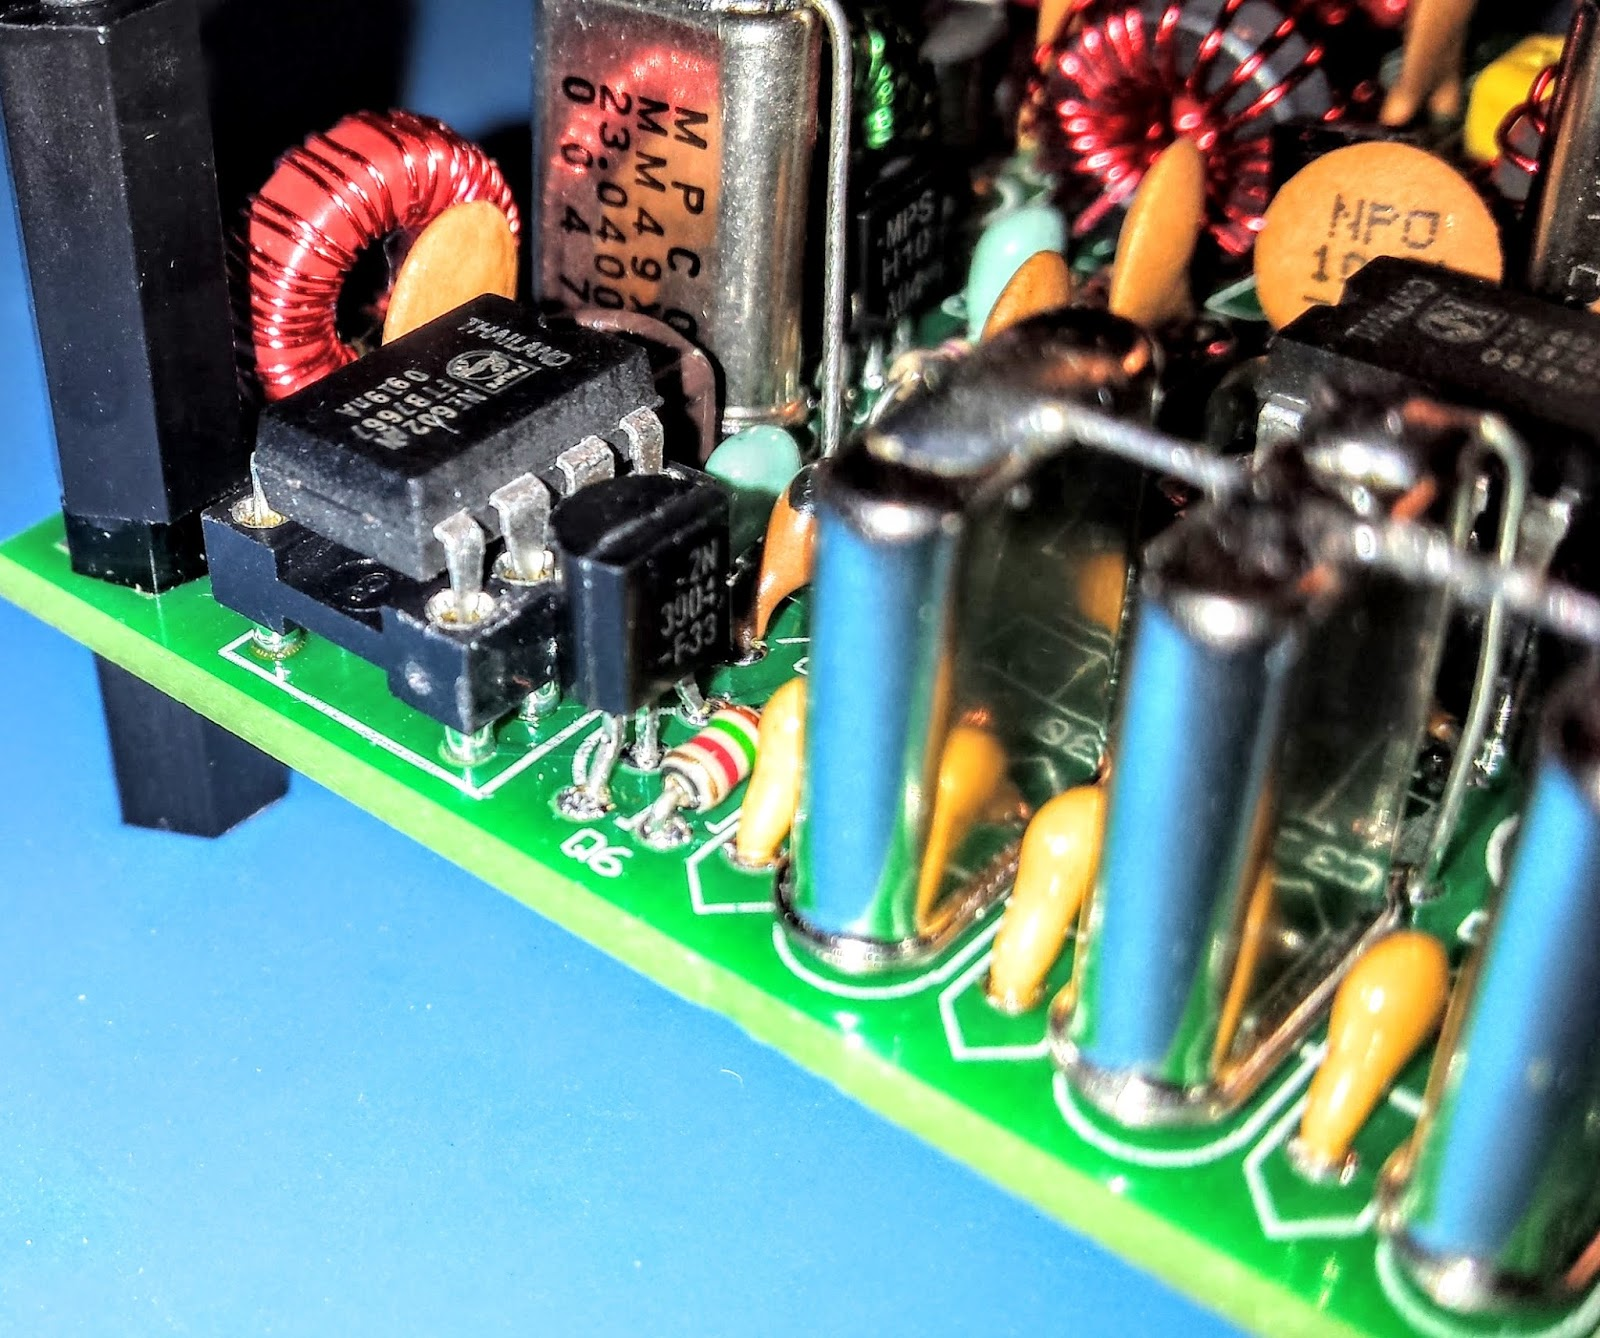 Ham Radio Qrp March 2016 Parallel Lc Circuit Http Electronicsclubforengineersblogspotcom Xtal Filters Give It Good Selectivity